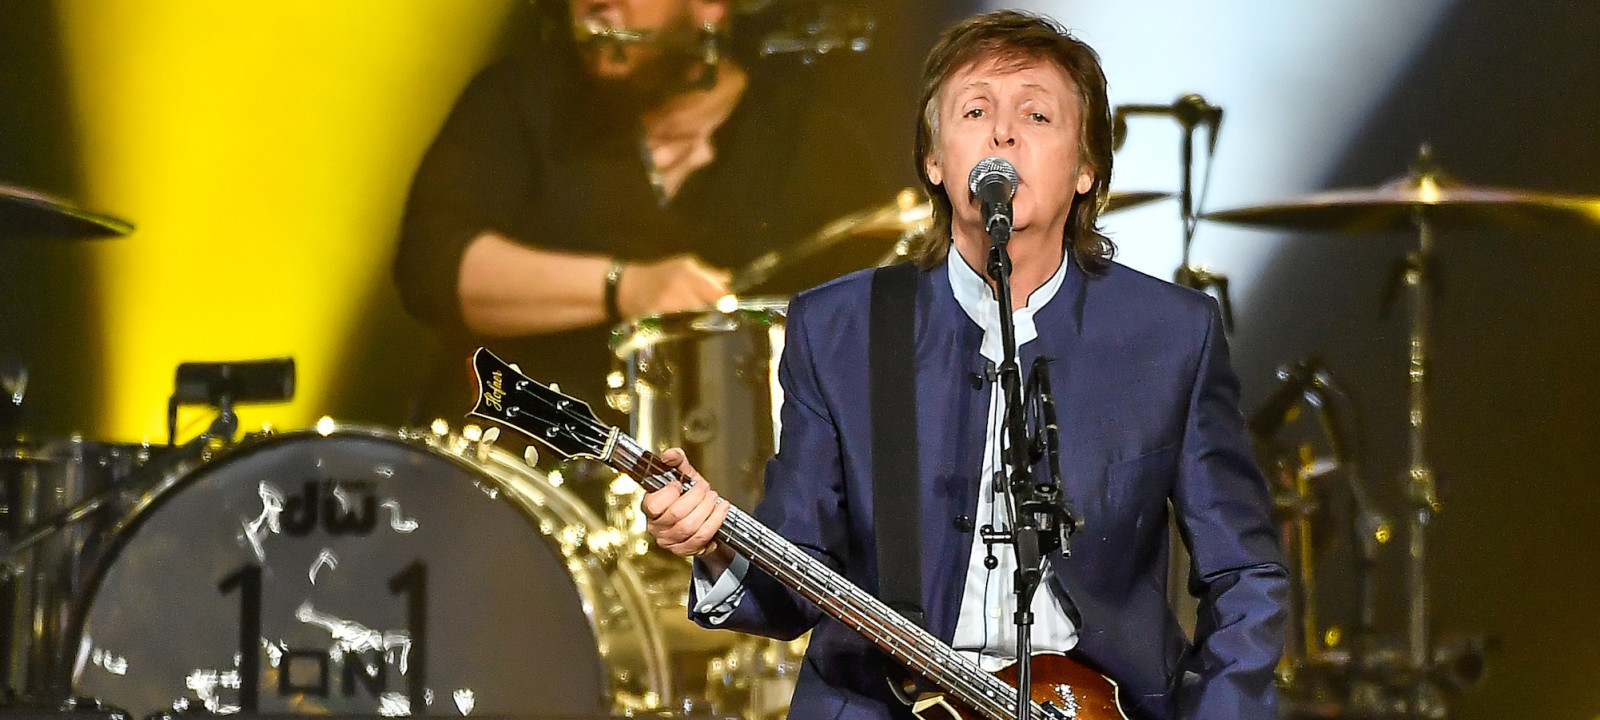 FRESNO, CA – APRIL 13:  Paul McCartney performs on Opening Night of the One On One Tour at Save Mart Center on April 13, 2016 in Fresno, California.